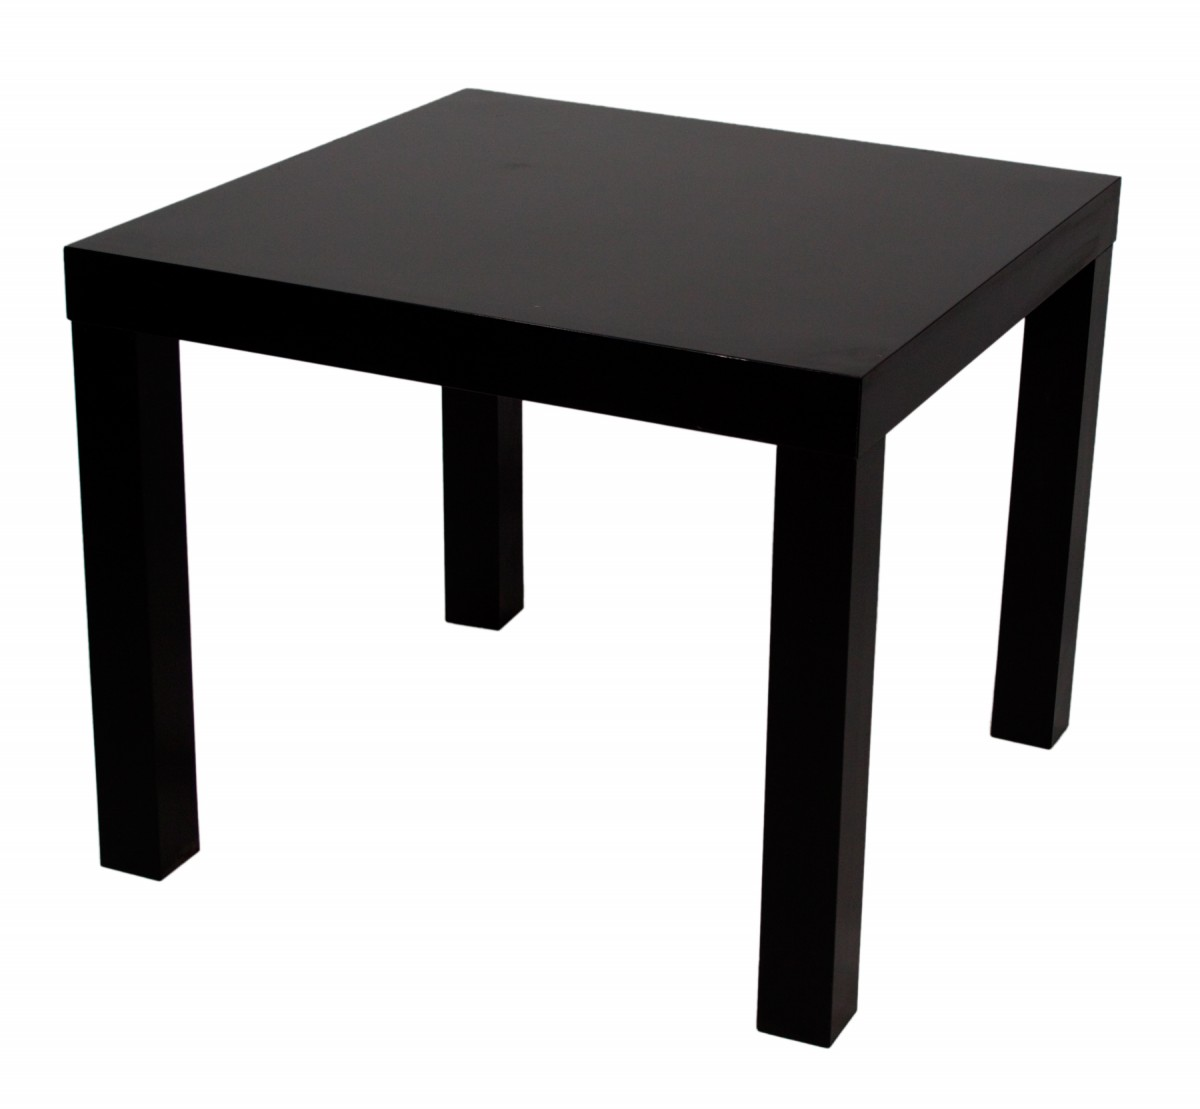 Table basse woody noire mobilier location - Tables basses noires ...